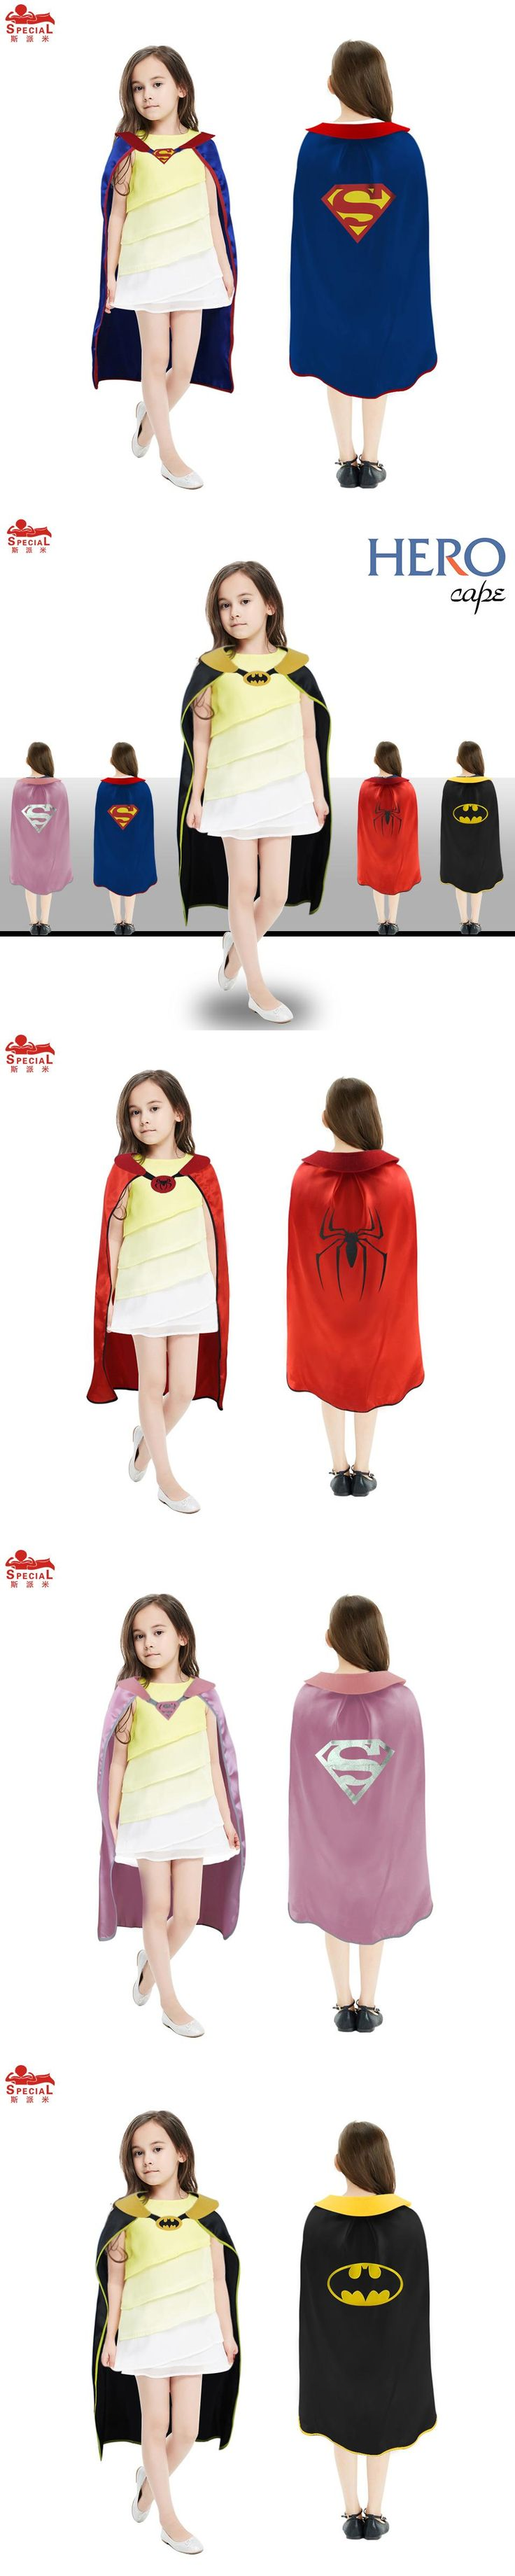 L27* Kids superhero cape for party dress up Children Day kid costume for girl cosplay Halloween superman costume